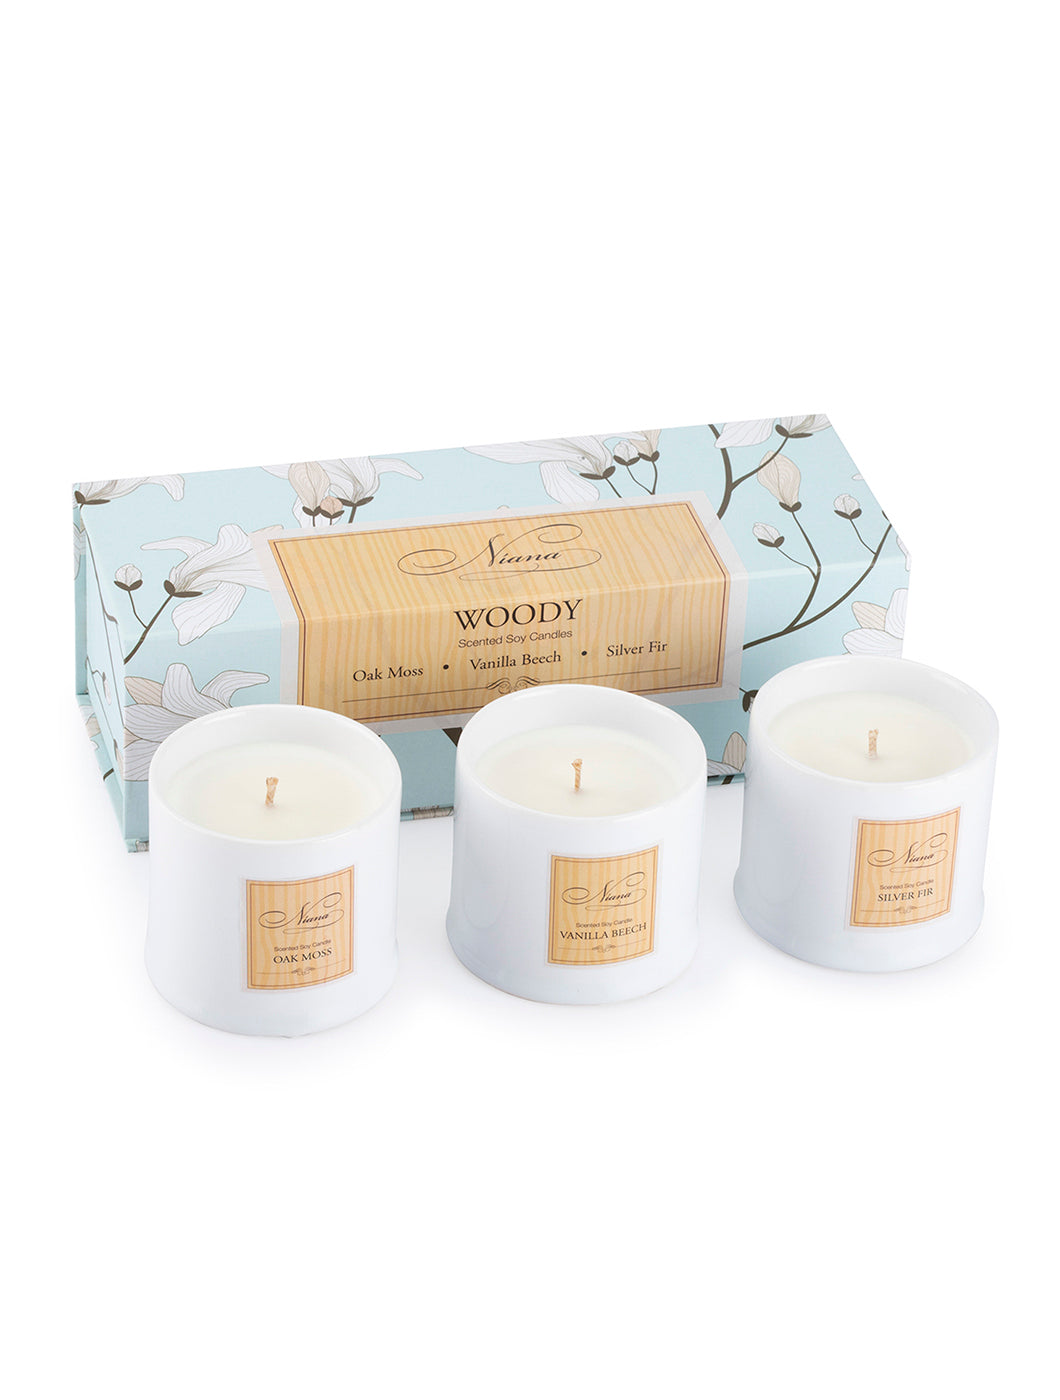 Niana Woody Collection - Set of 3 Candles 120g Each